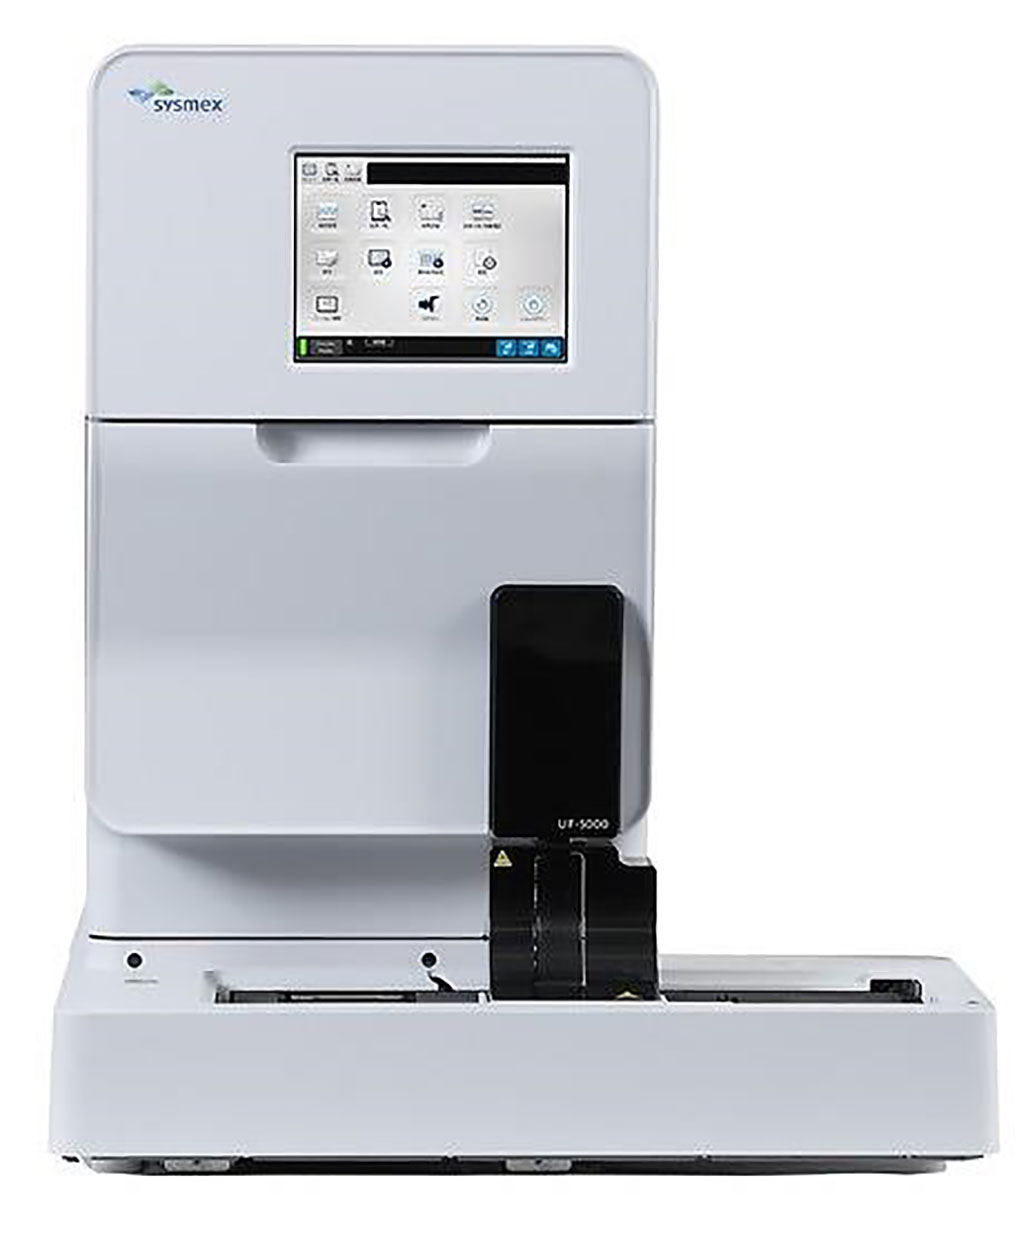 Image: The UF-5000 fully automated flow cytometer based on renowned fluorescence flow cytometry (FFC), represents the latest in urinalysis technology (Photo courtesy of Sysmex Corporation).